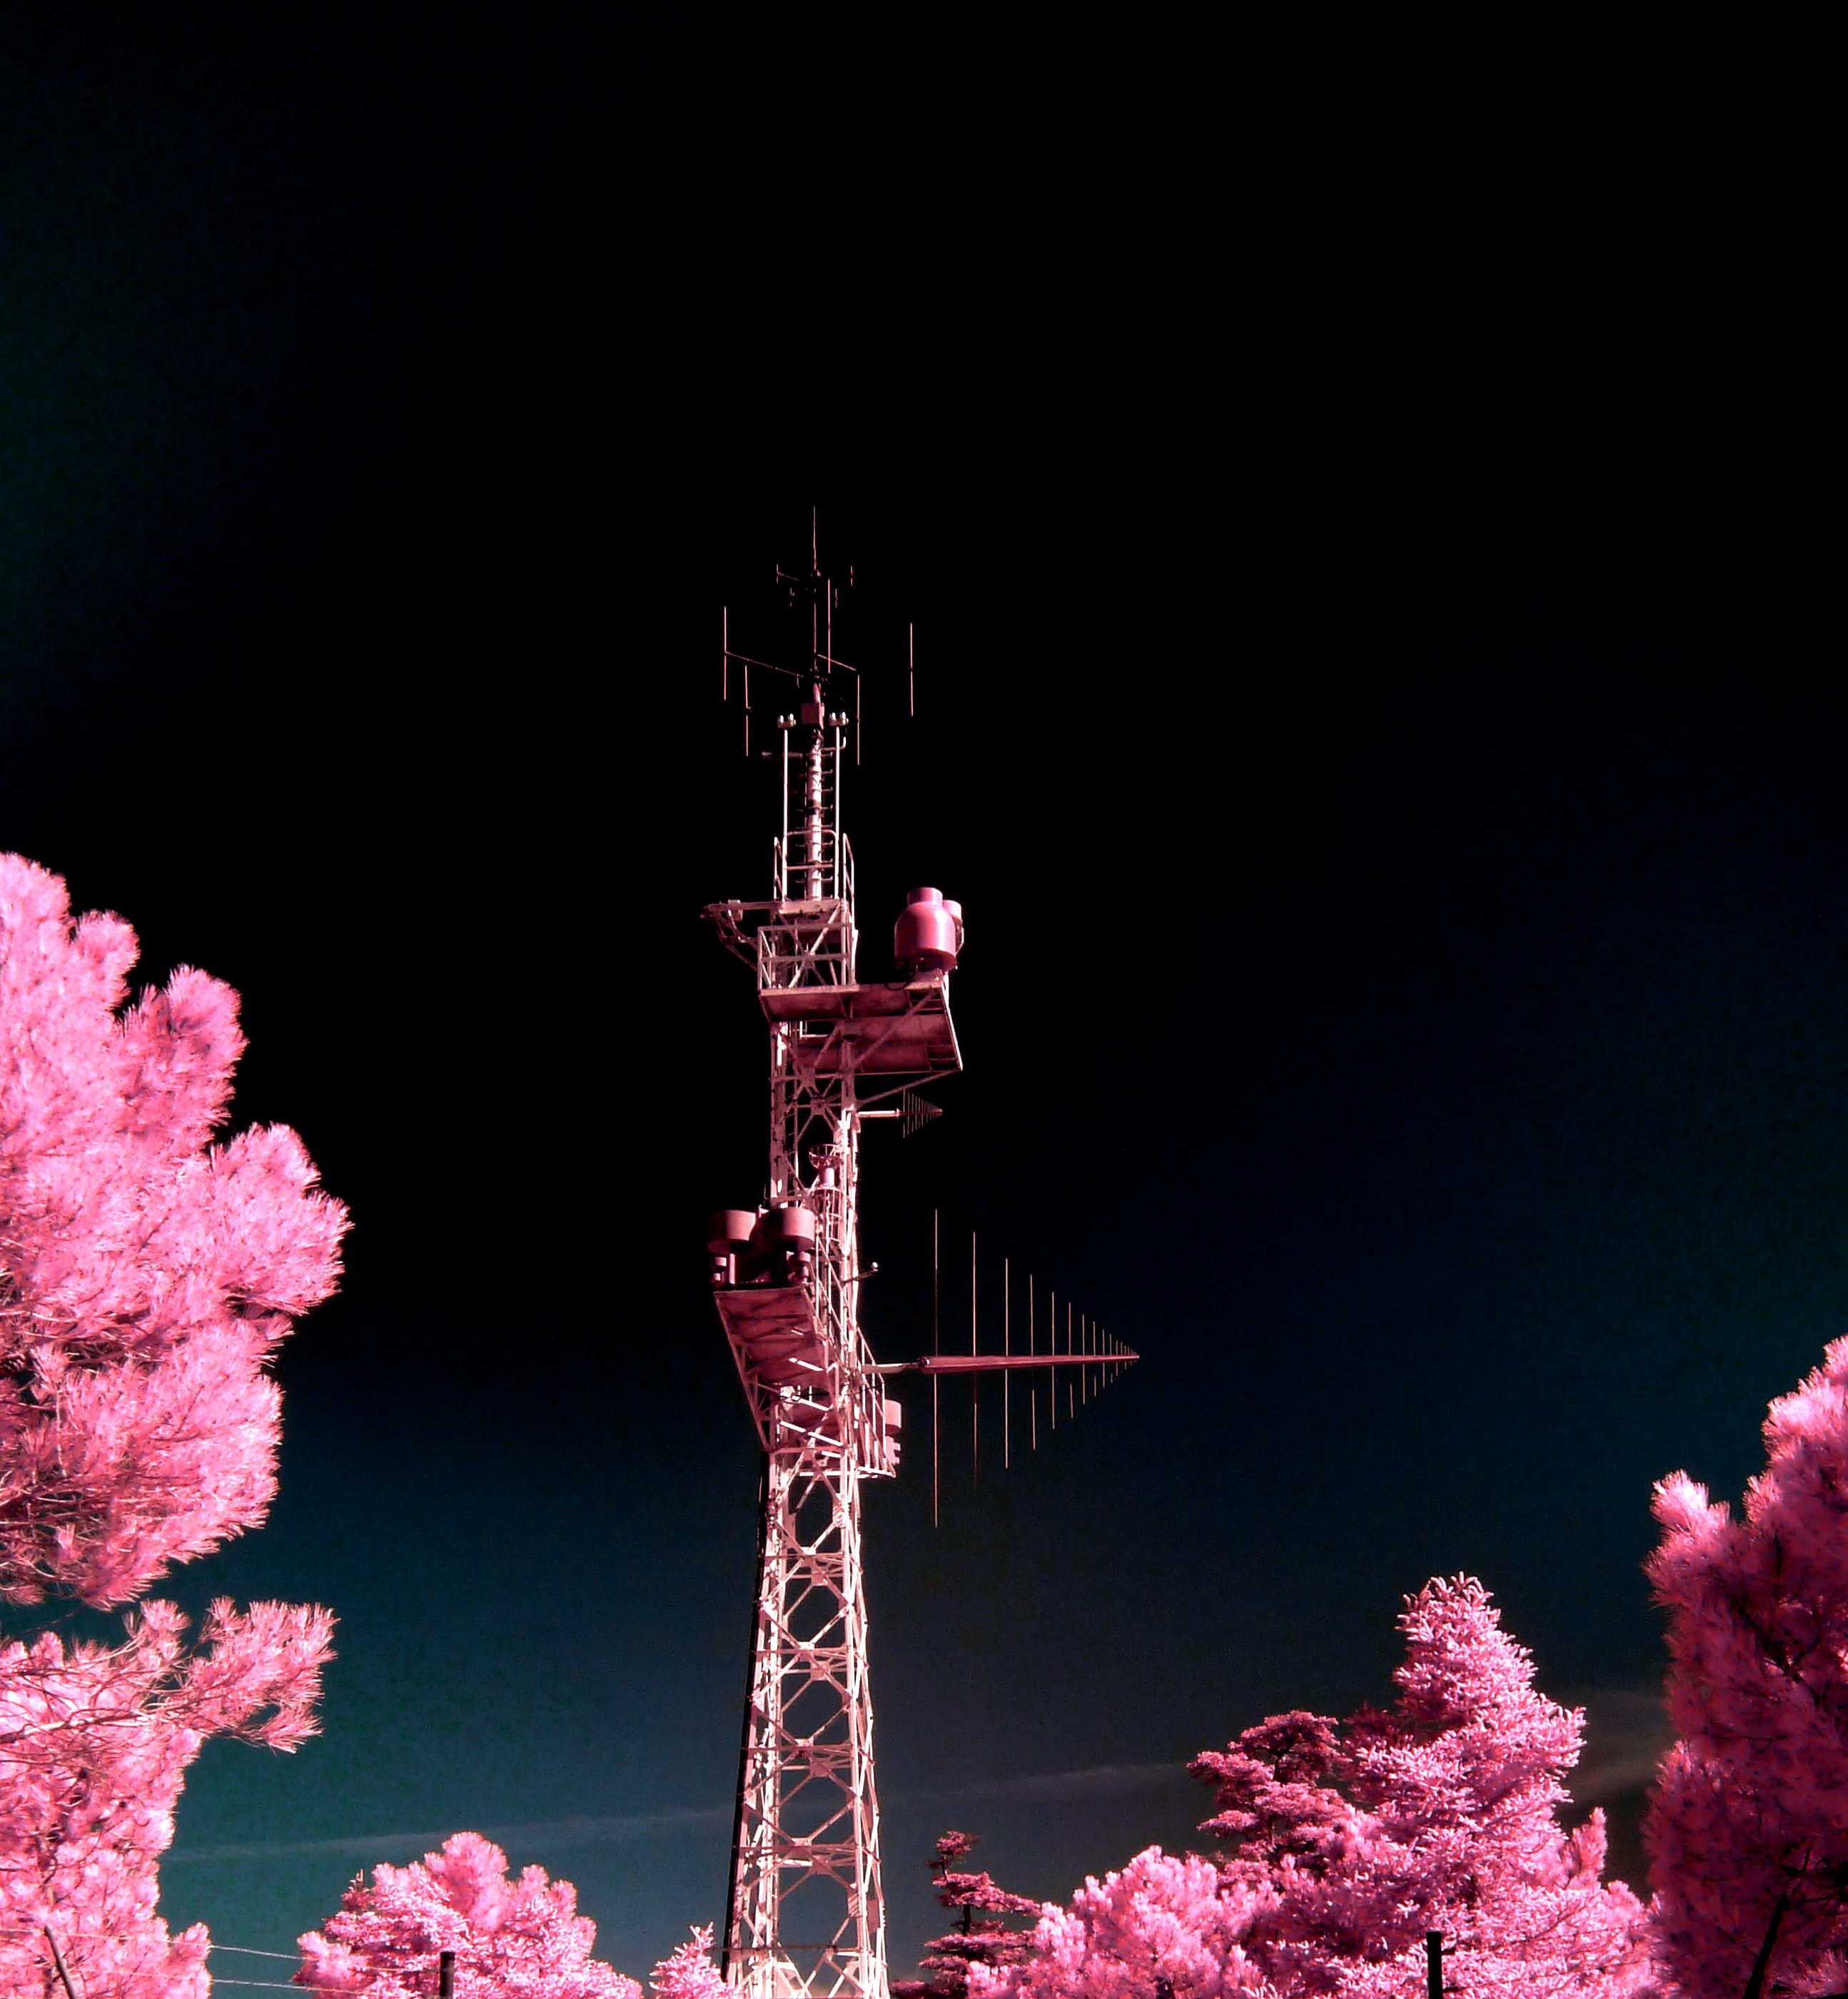 brown tower between pink leaf trees at nighttime